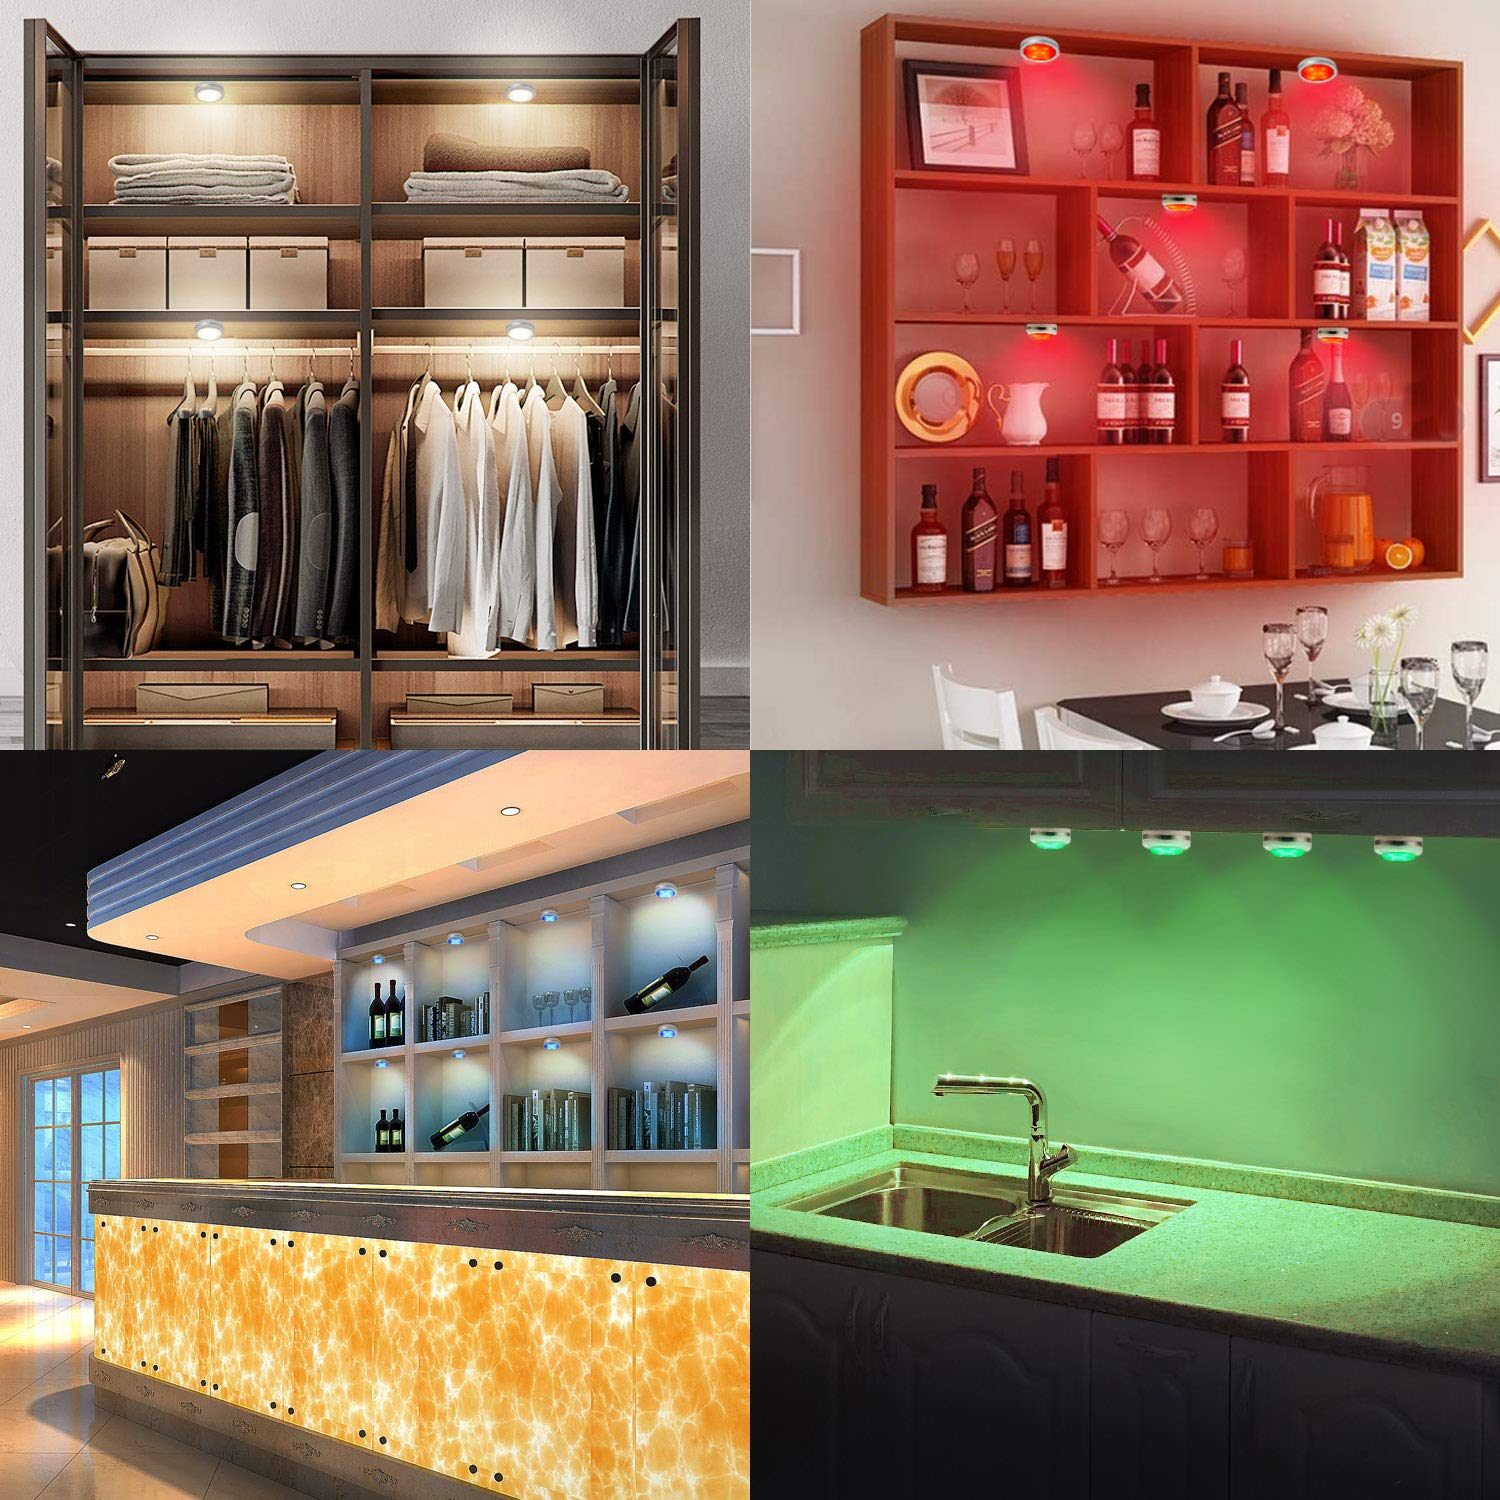 Lightess 9 Packs RGB Led Under Cabinet Lights Wireless Led Closet Lights Dimmable Wardrobe Lights Battery Powered LED Cupboard Light Remote Control Ambient Lights 4000K for Counter Kitchen Shelves